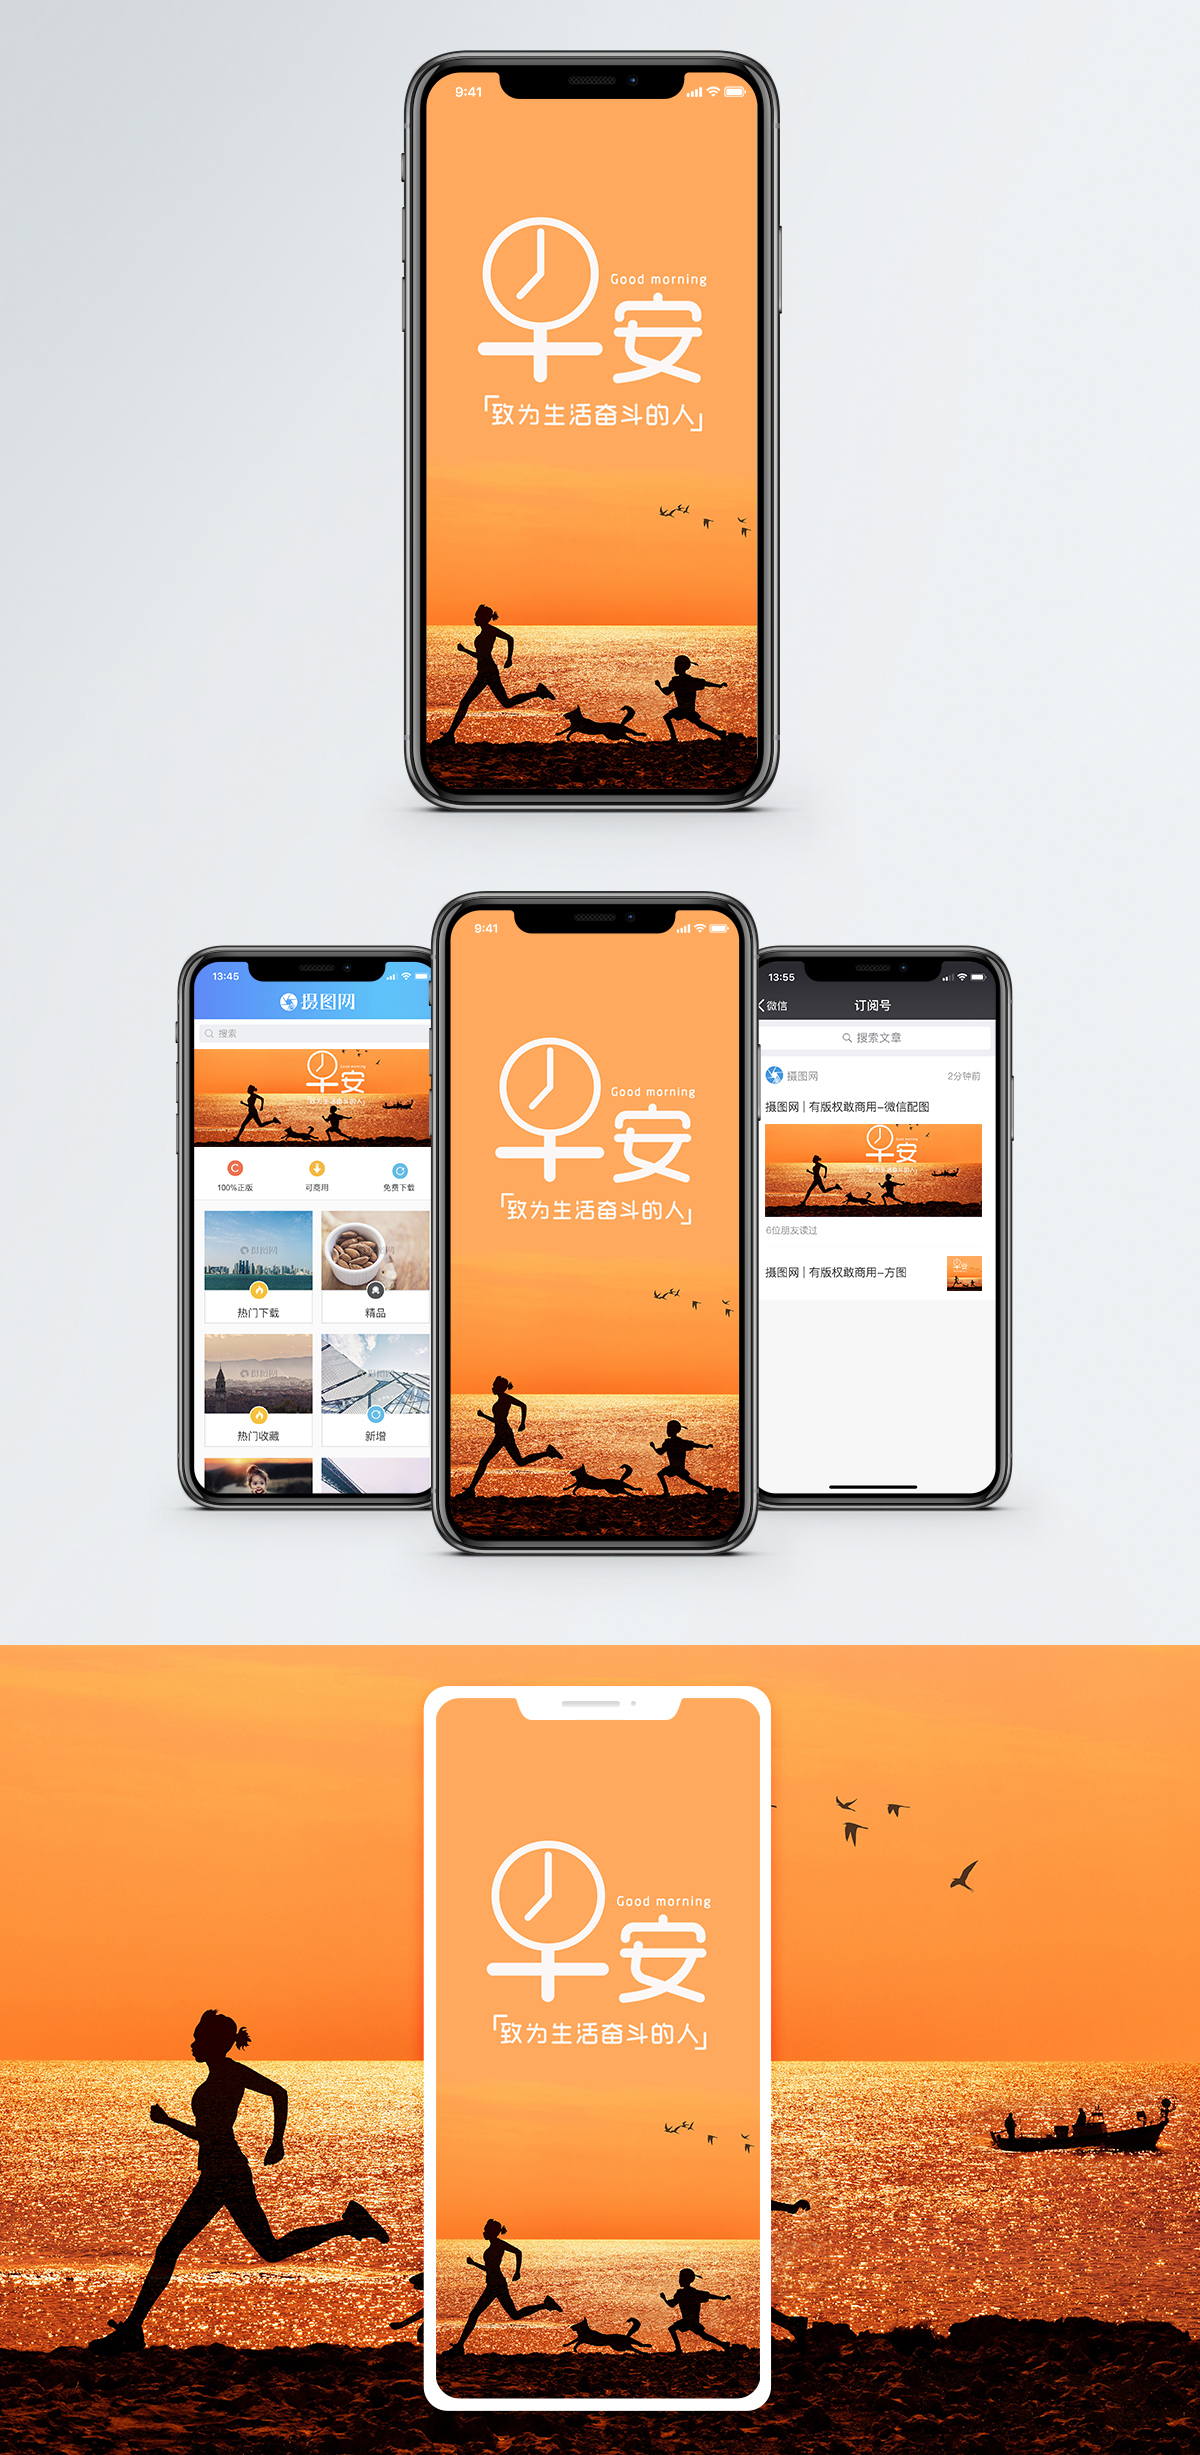 Greeting mobile phone posters in the morning and evening greeting mobile phone posters in the morning and evening m4hsunfo